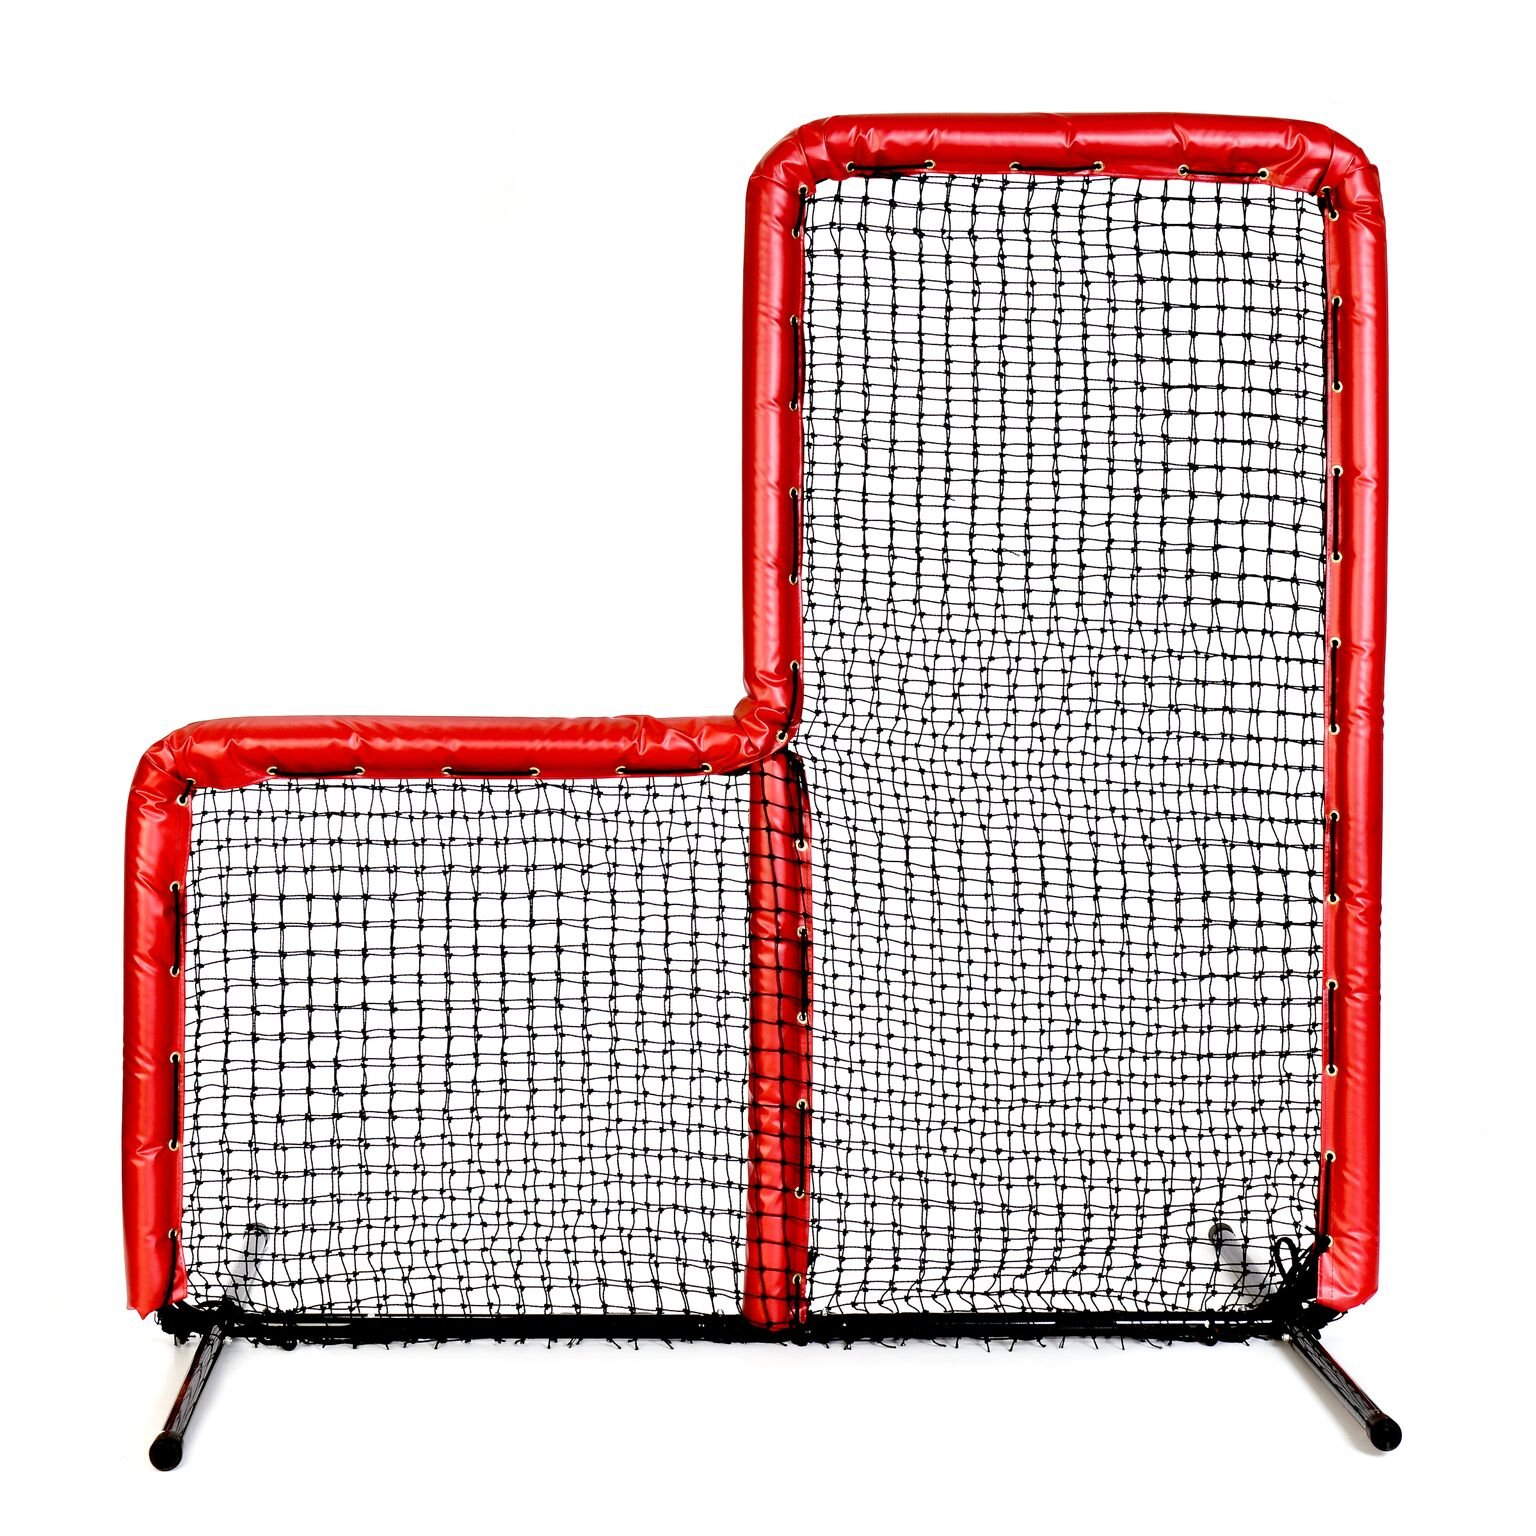 Armor Series Pitching Screen Baseball Softball Practice Net with Screen Bulletz Leg Caps. 7x7 L-Screen Perfect for Baseball and Softball Batting Practice. Choose Padding Color. (Red) by Armor